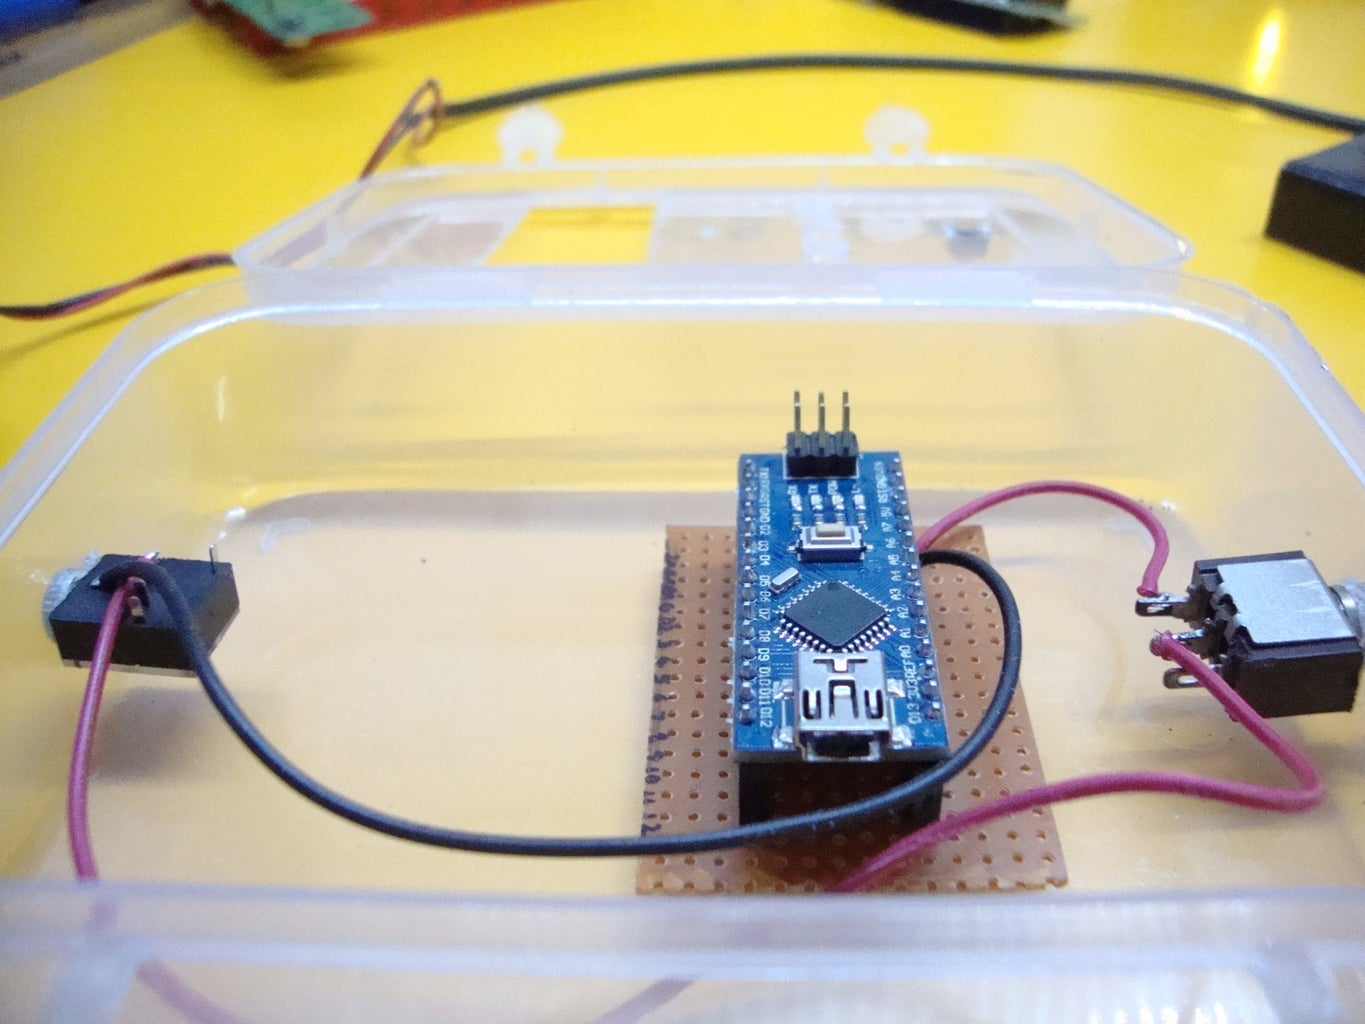 Start Connecting: the Power Supply